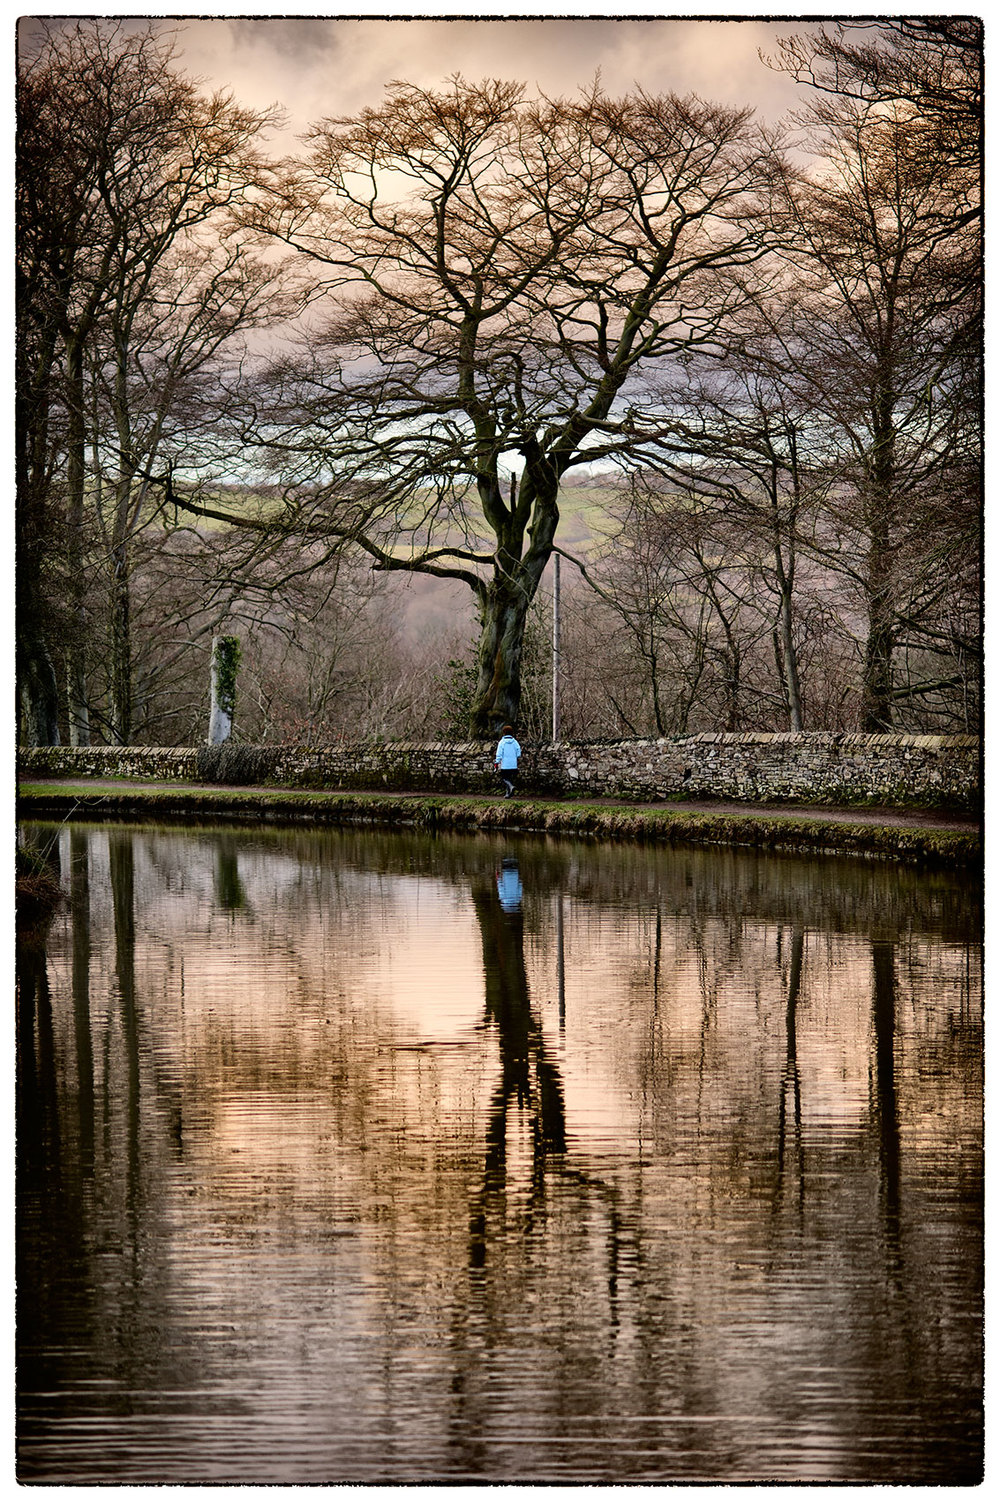 (for yesterday!) - Down by the canal, Marple as the sun was starting to go down.